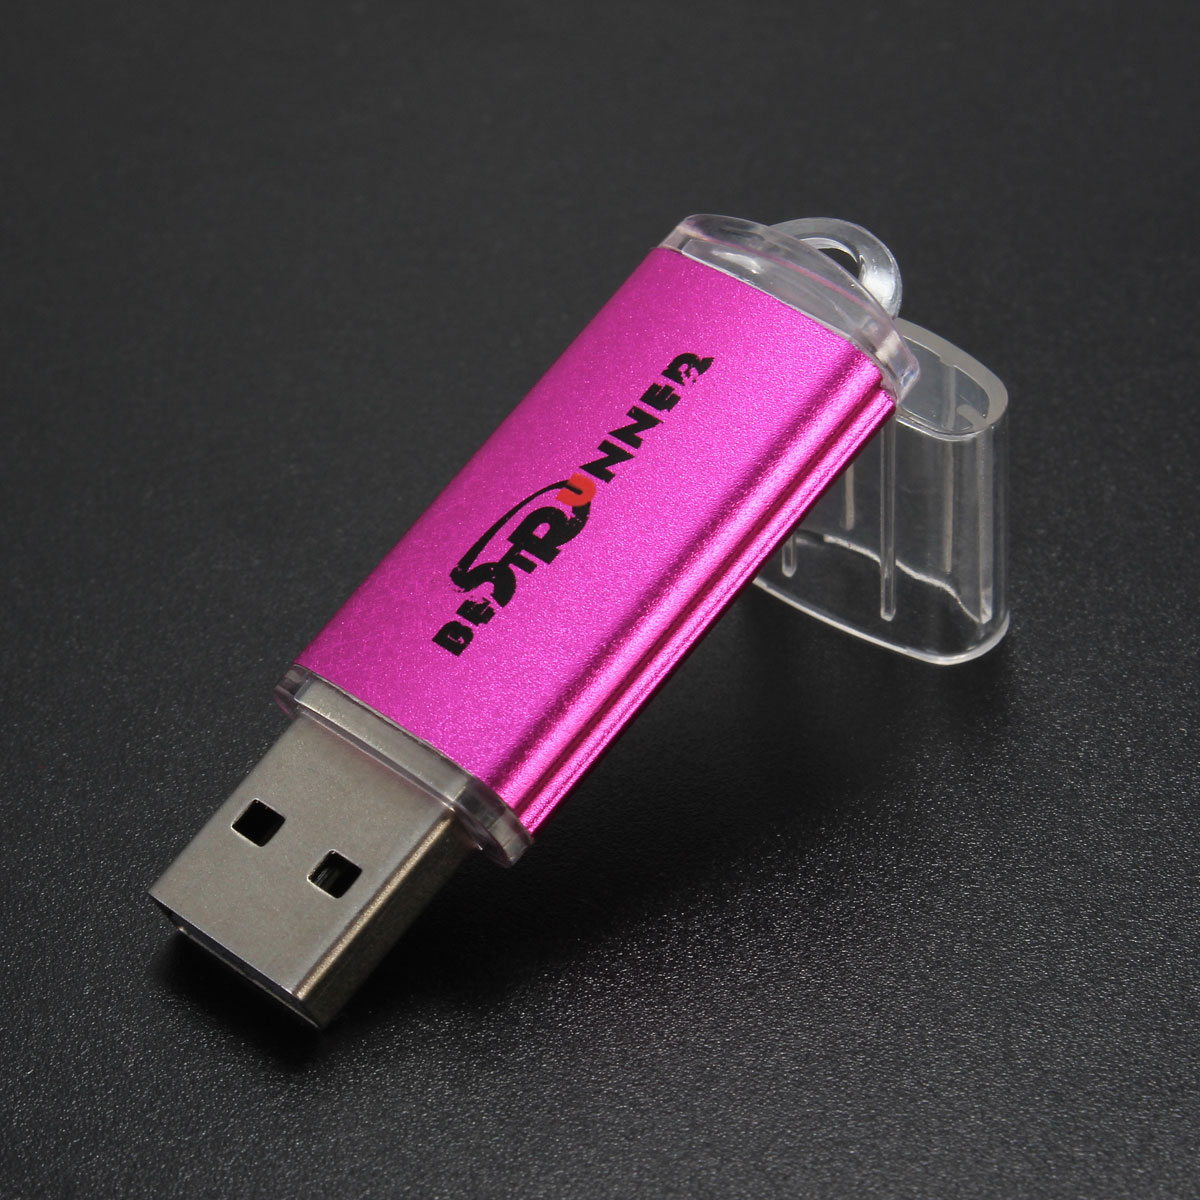 BESTRUNNER 1GB USB 2.0 Flash Drive Pen Bright Memory Stick Thumb U Disk,Silver color